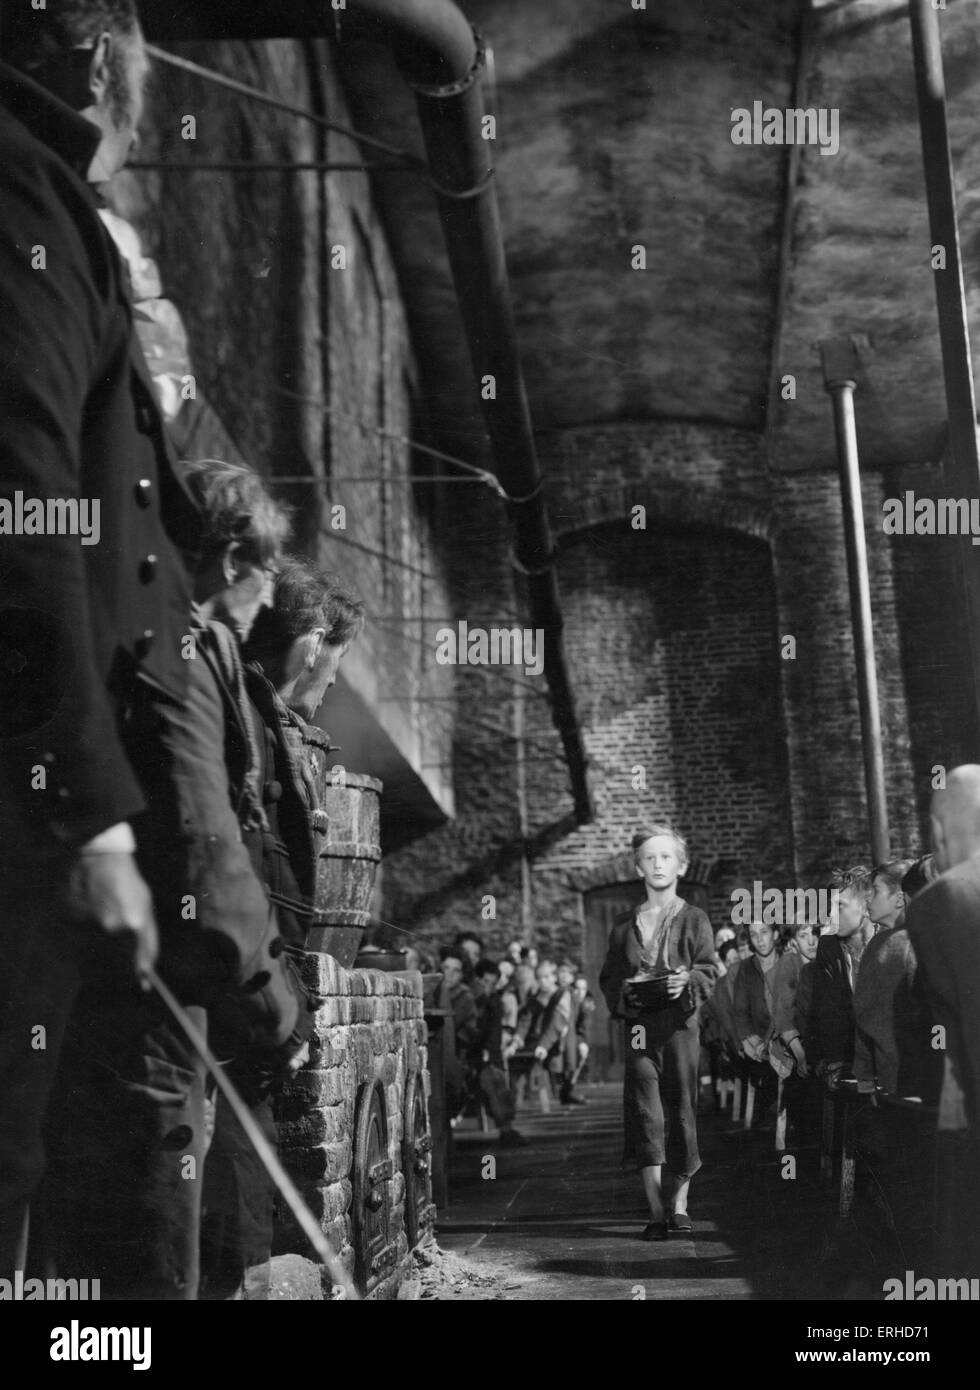 Oliver Twist. film still from 1948 Rank Film production of Charles Dickens'  book.  Oliver asks for more. British - Stock Image